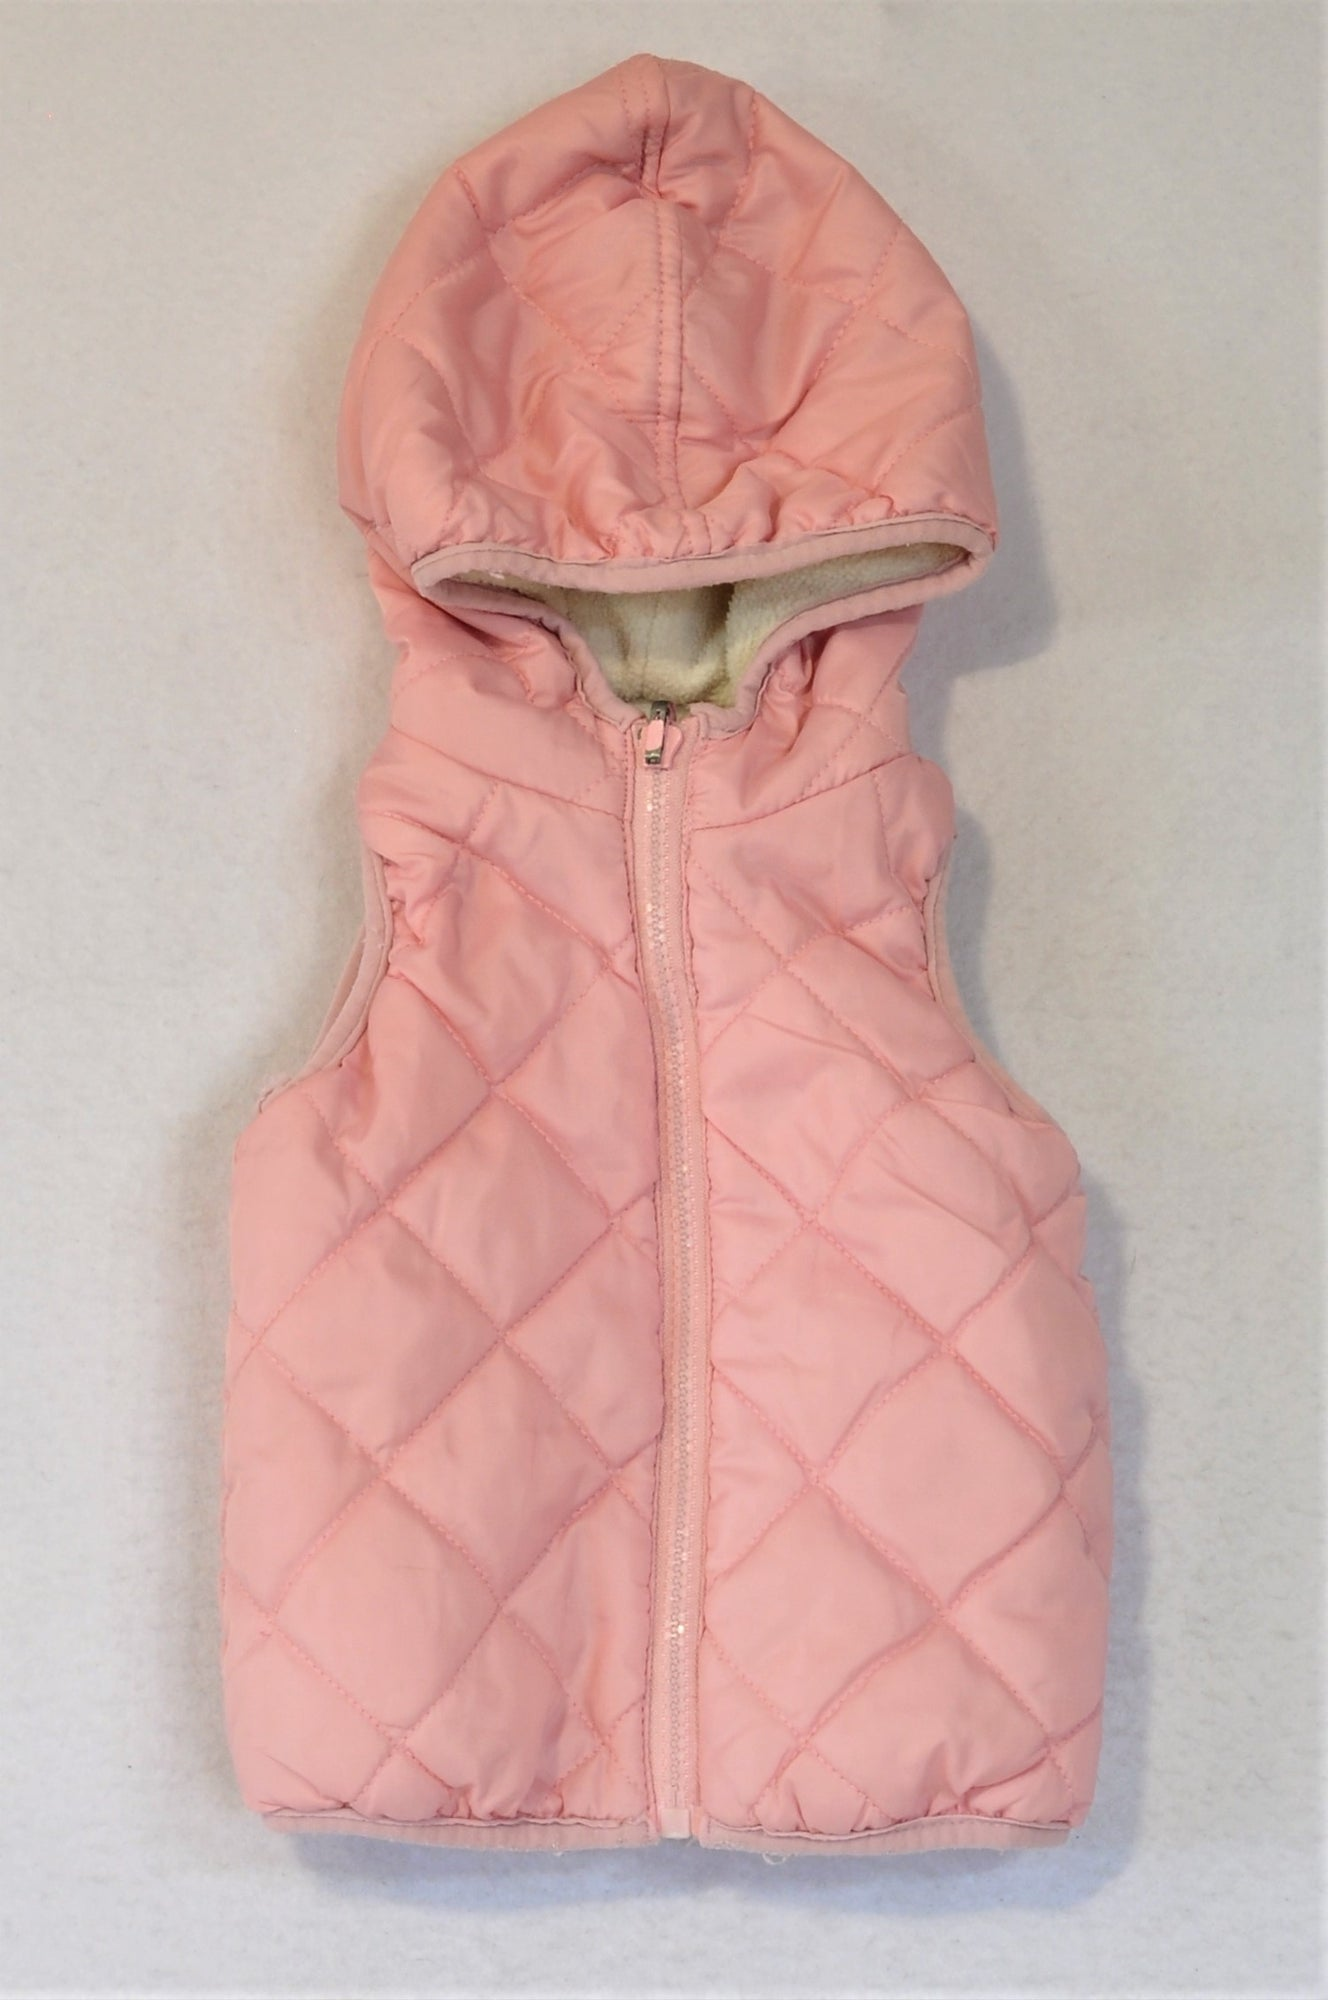 Ackermans Pink With Fleece Lining Top Girls 3-6 months